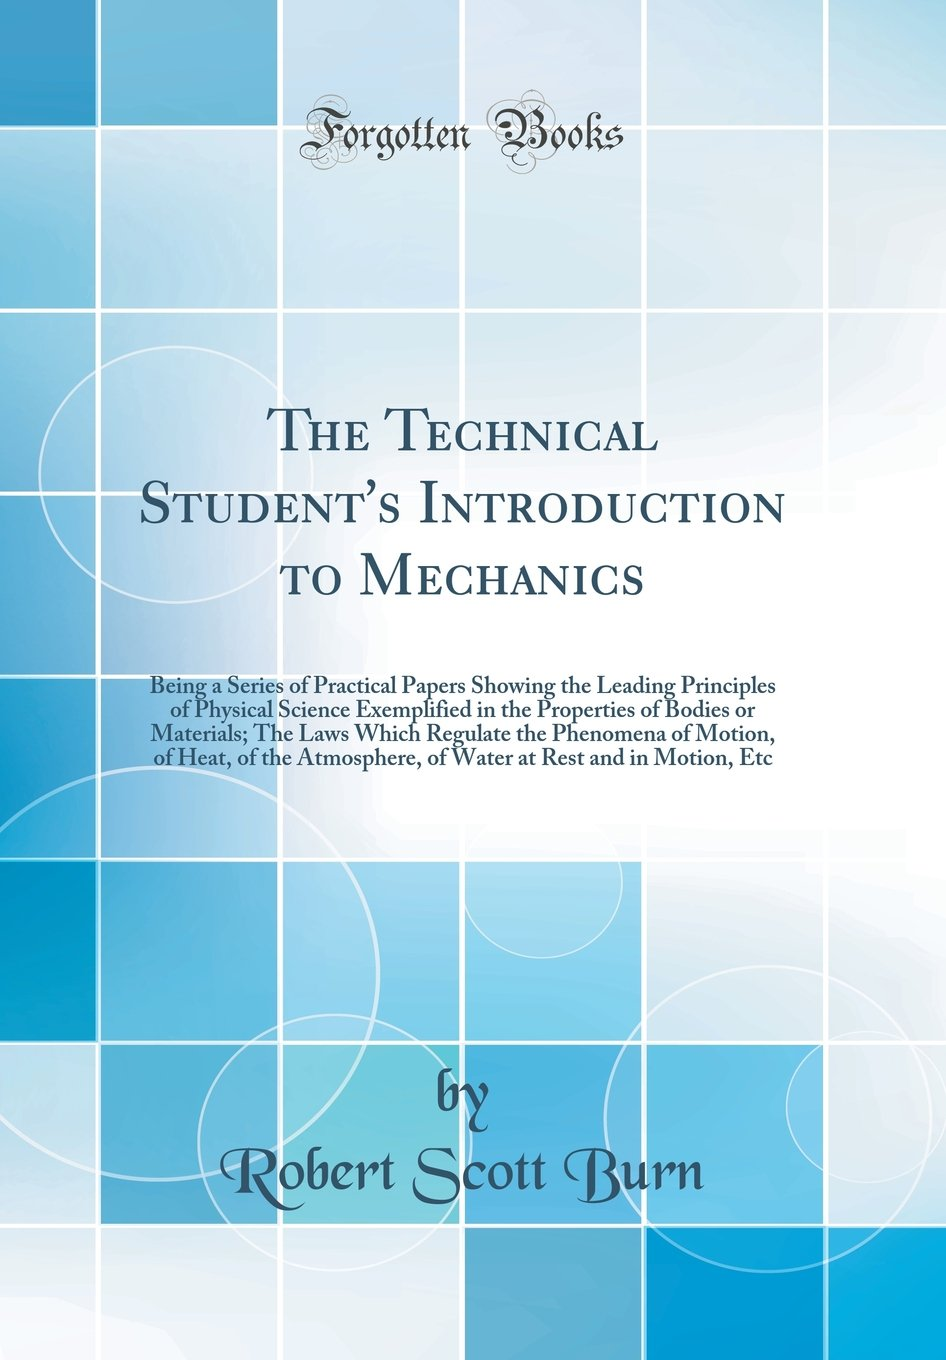 Download The Technical Student's Introduction to Mechanics: Being a Series of Practical Papers Showing the Leading Principles of Physical Science Exemplified ... the Phenomena of Motion, of Heat, of the ebook